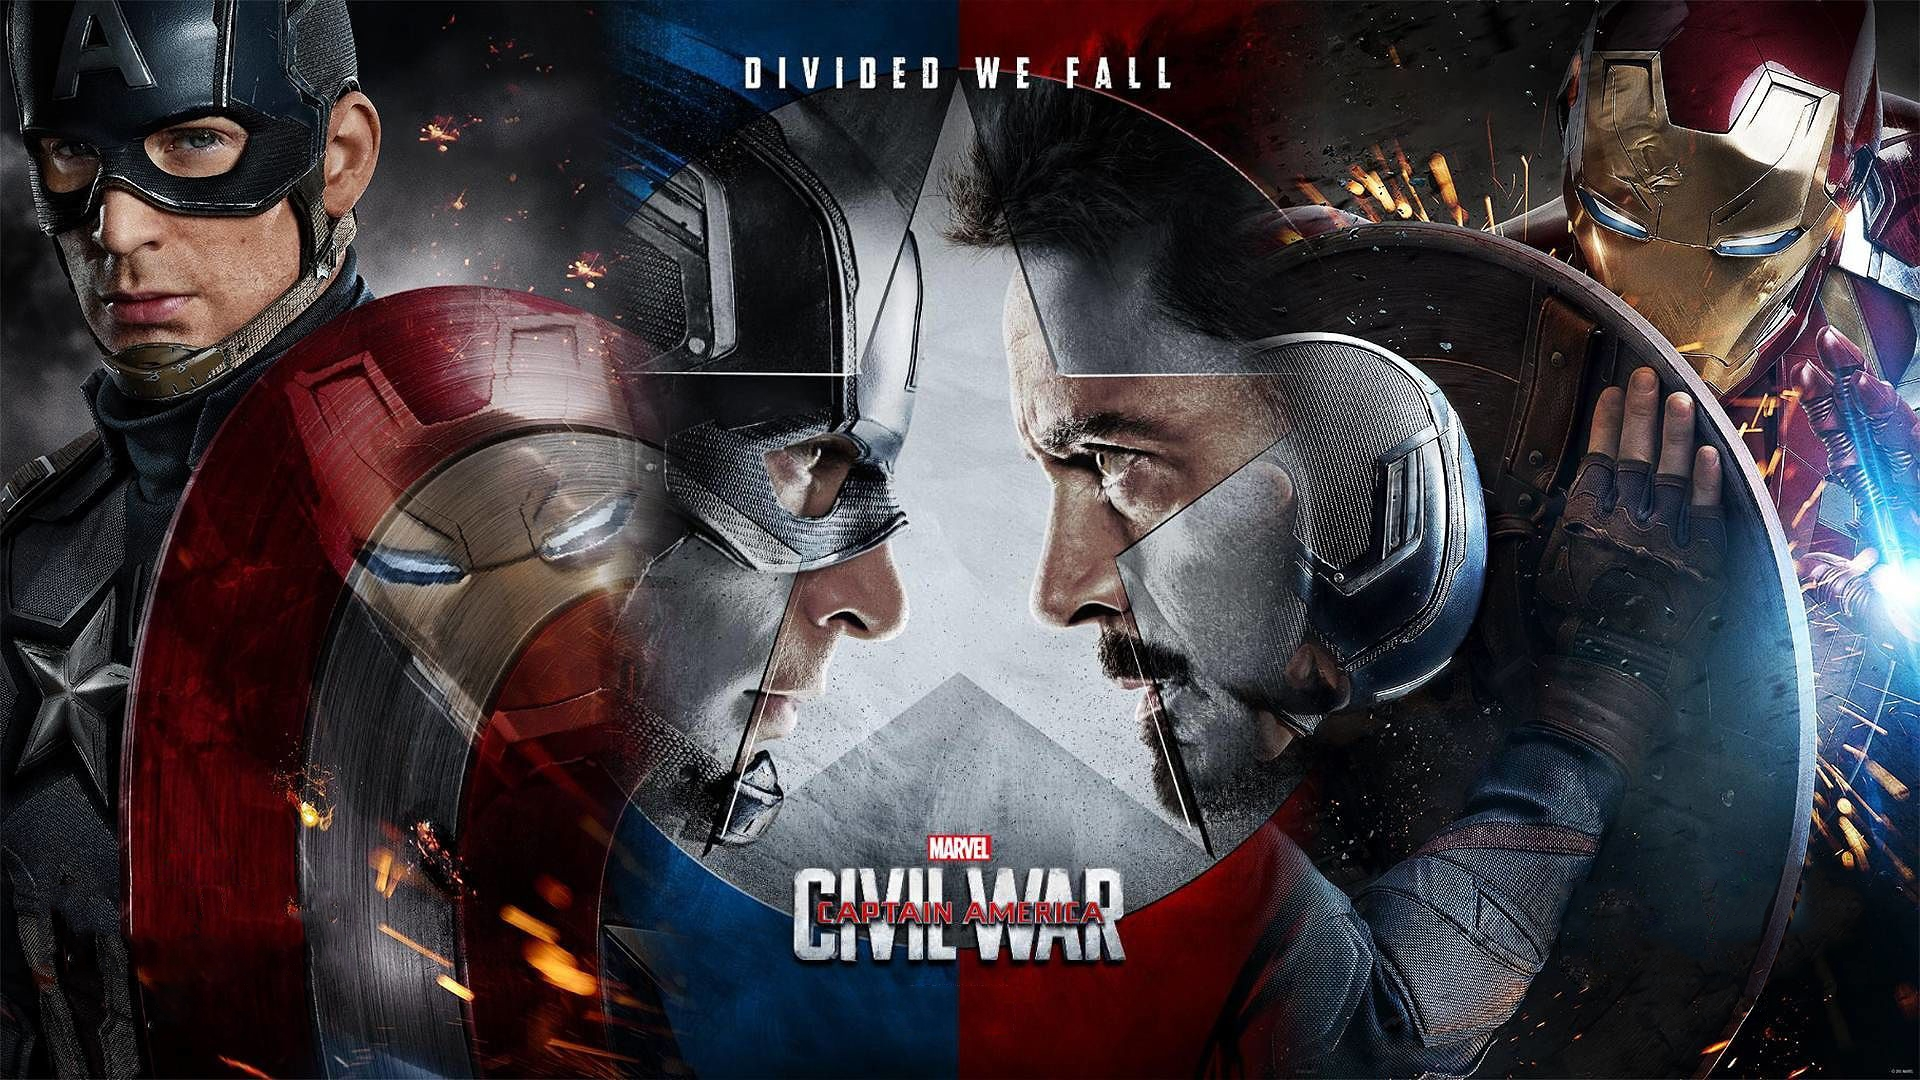 Team Captain America Civil War Movie And Character Posters Revealed 1920x1080